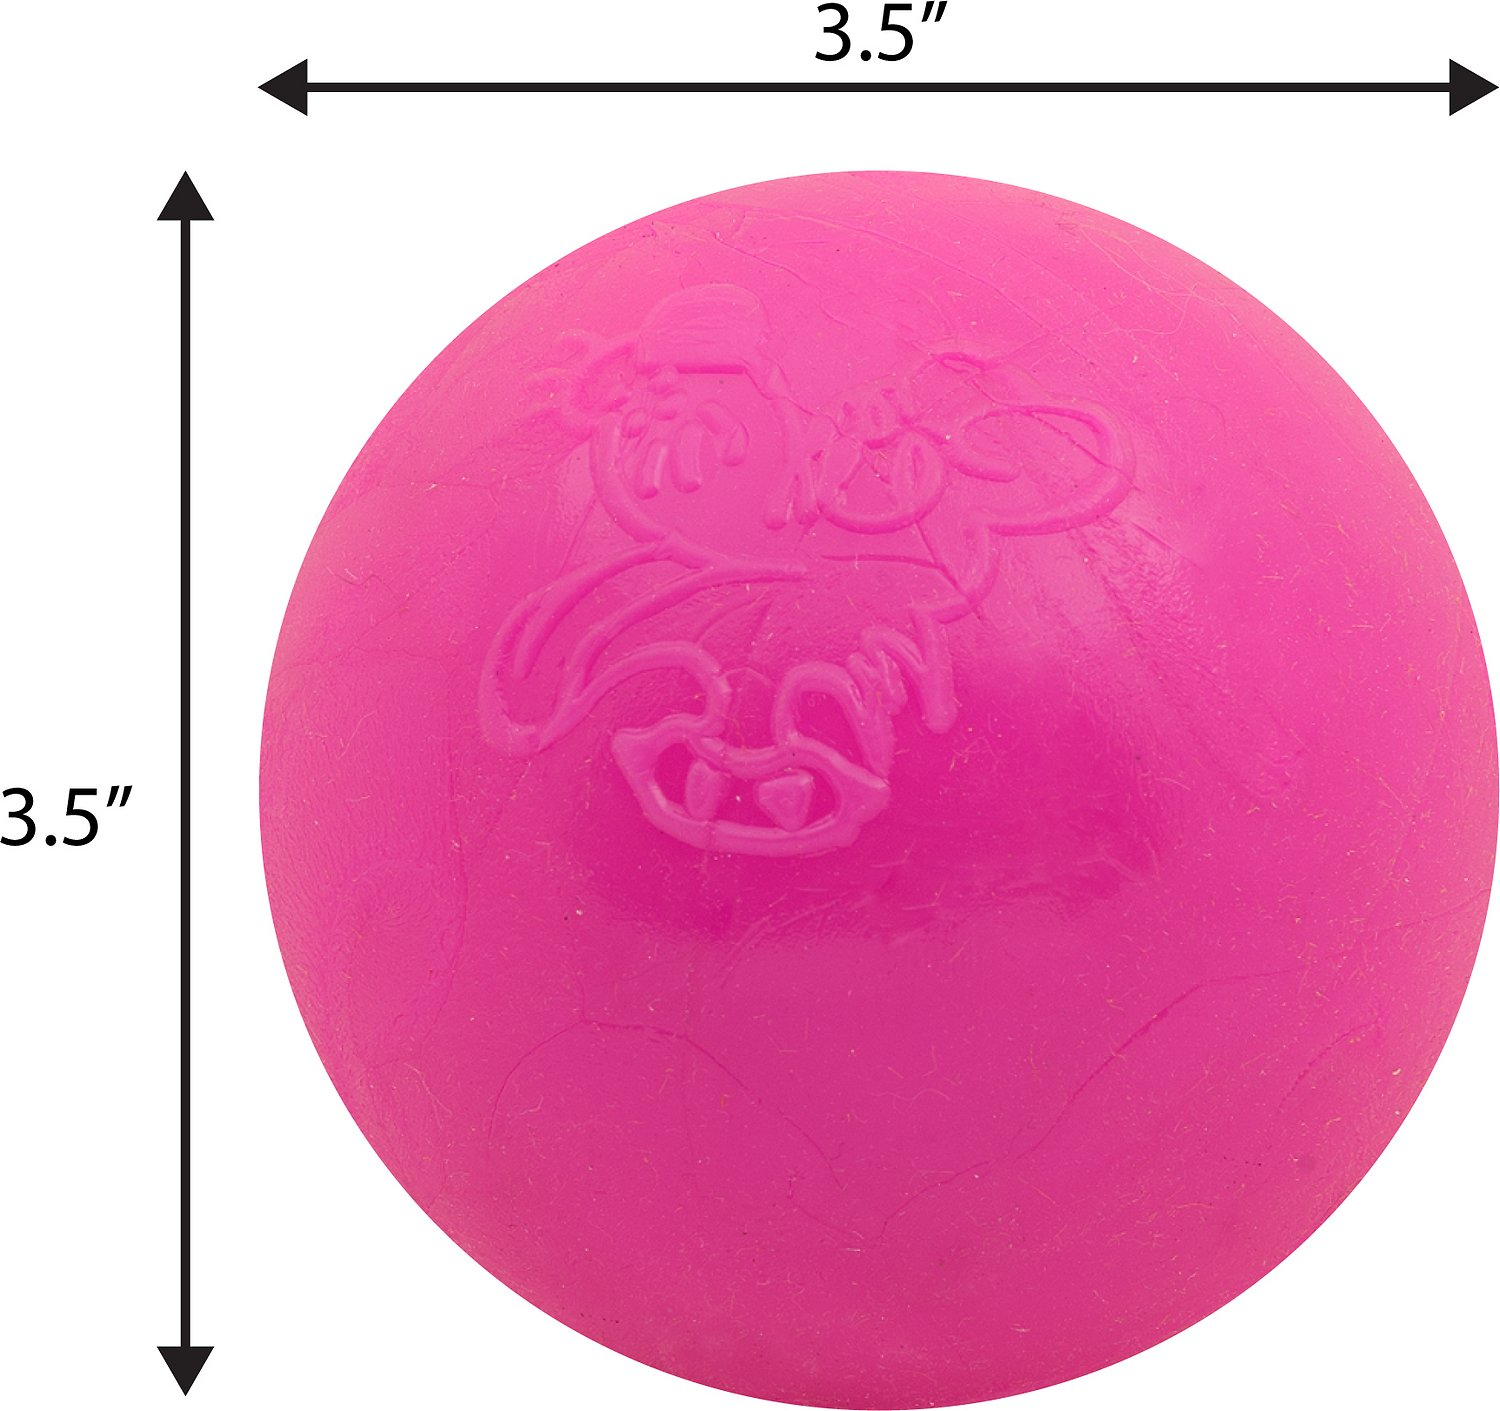 Ruff Dawg Indestructible Ball Dog Toy, 3.5-in - Chewy.com